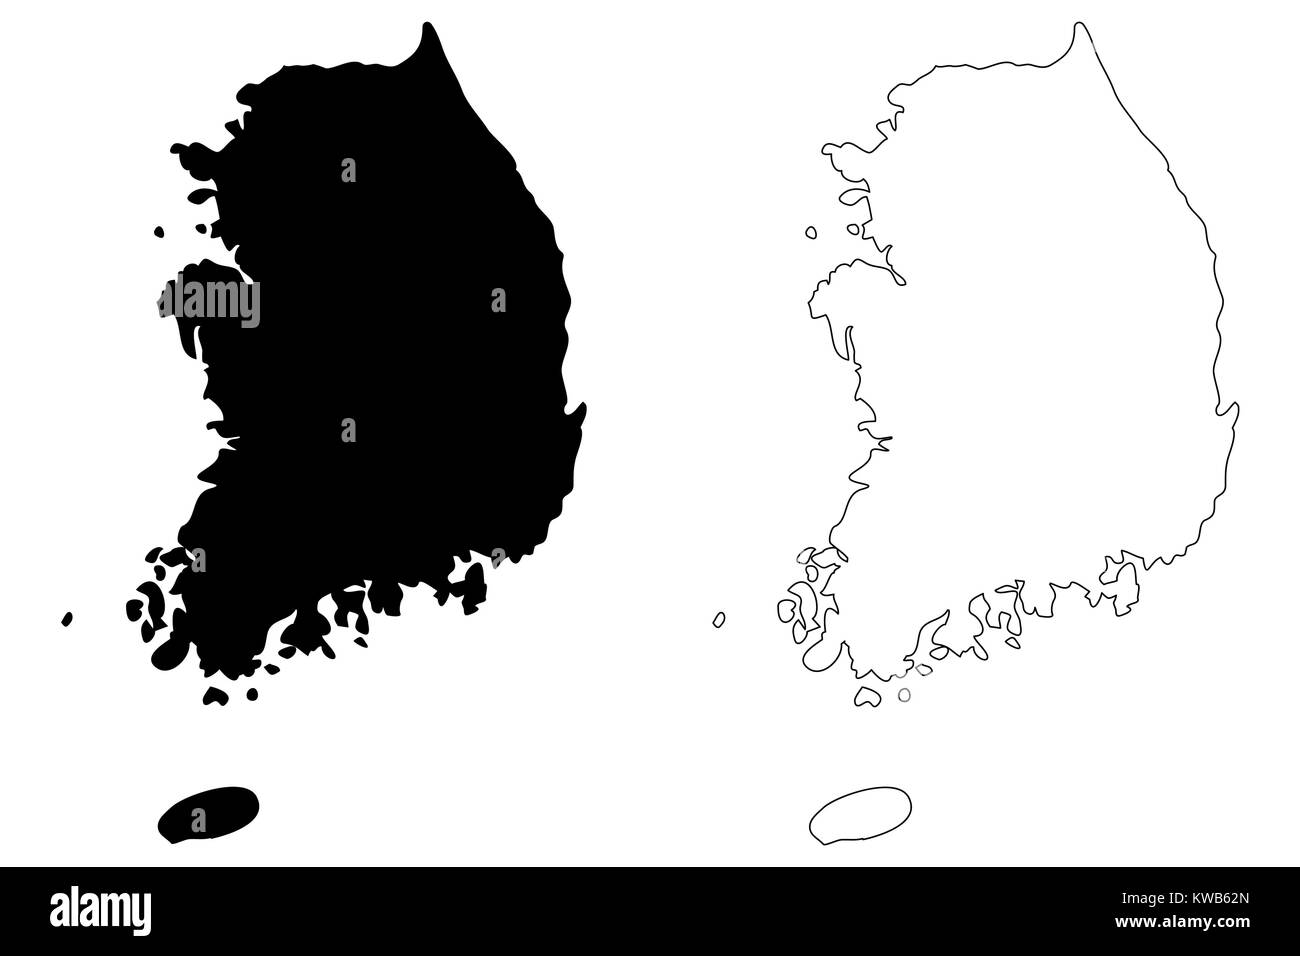 South Korea Map Vector Illustration Scribble Sketch Republic Of - South korea map vector